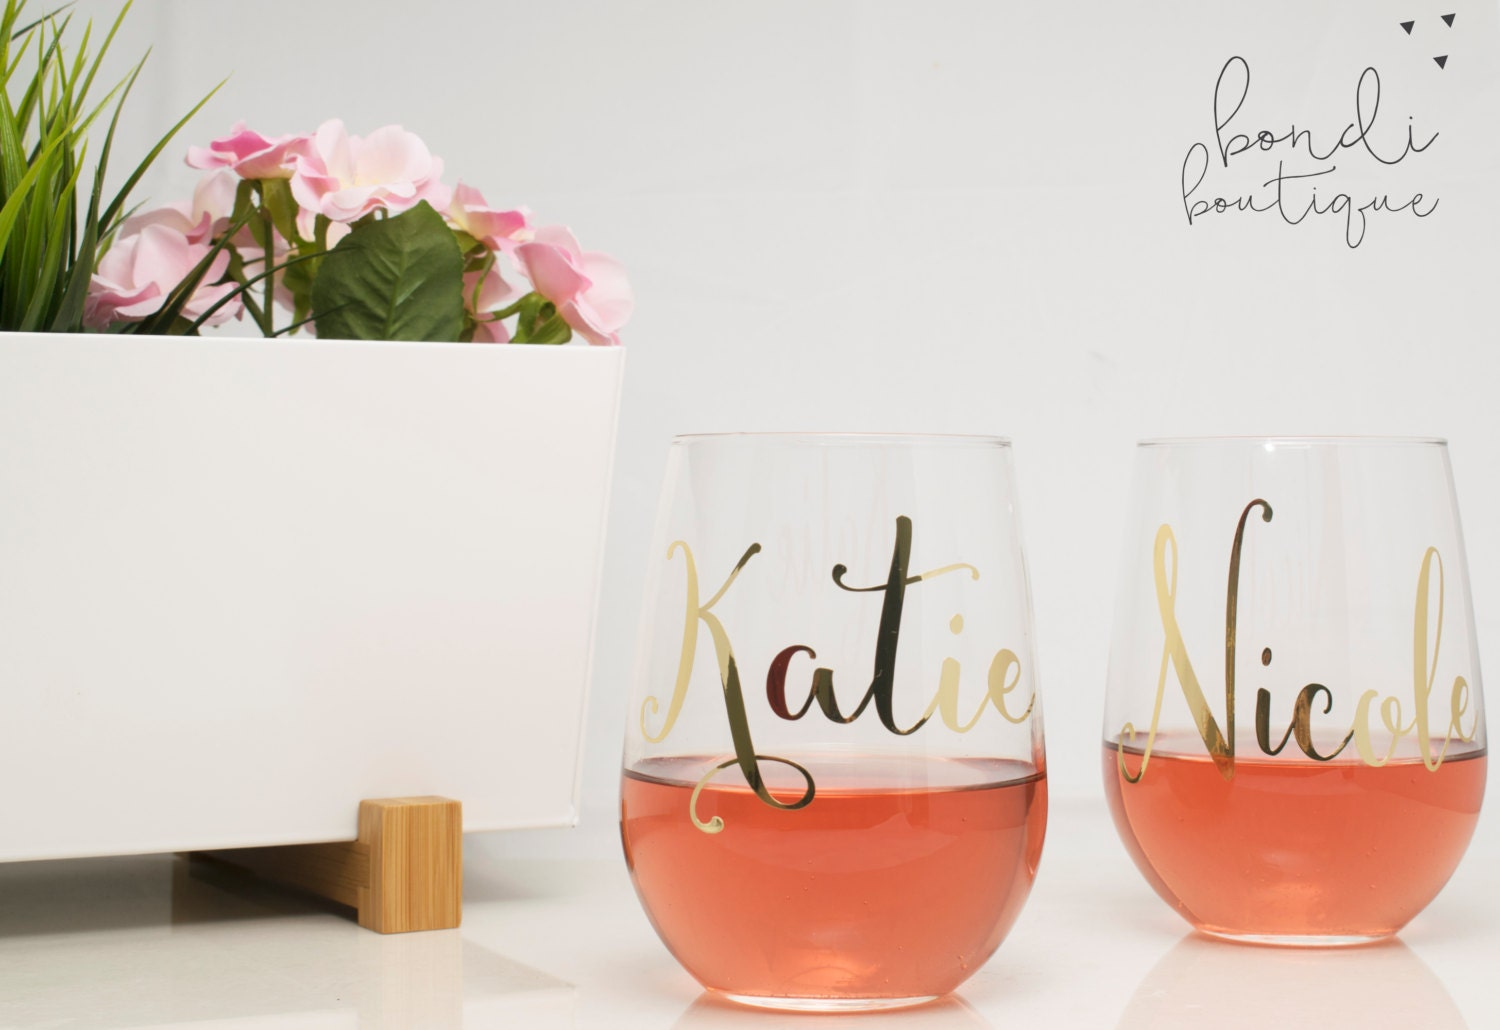 Wedding Personalized Stemless Wine Glasses personalized wine glasses stemless glass bachelorette